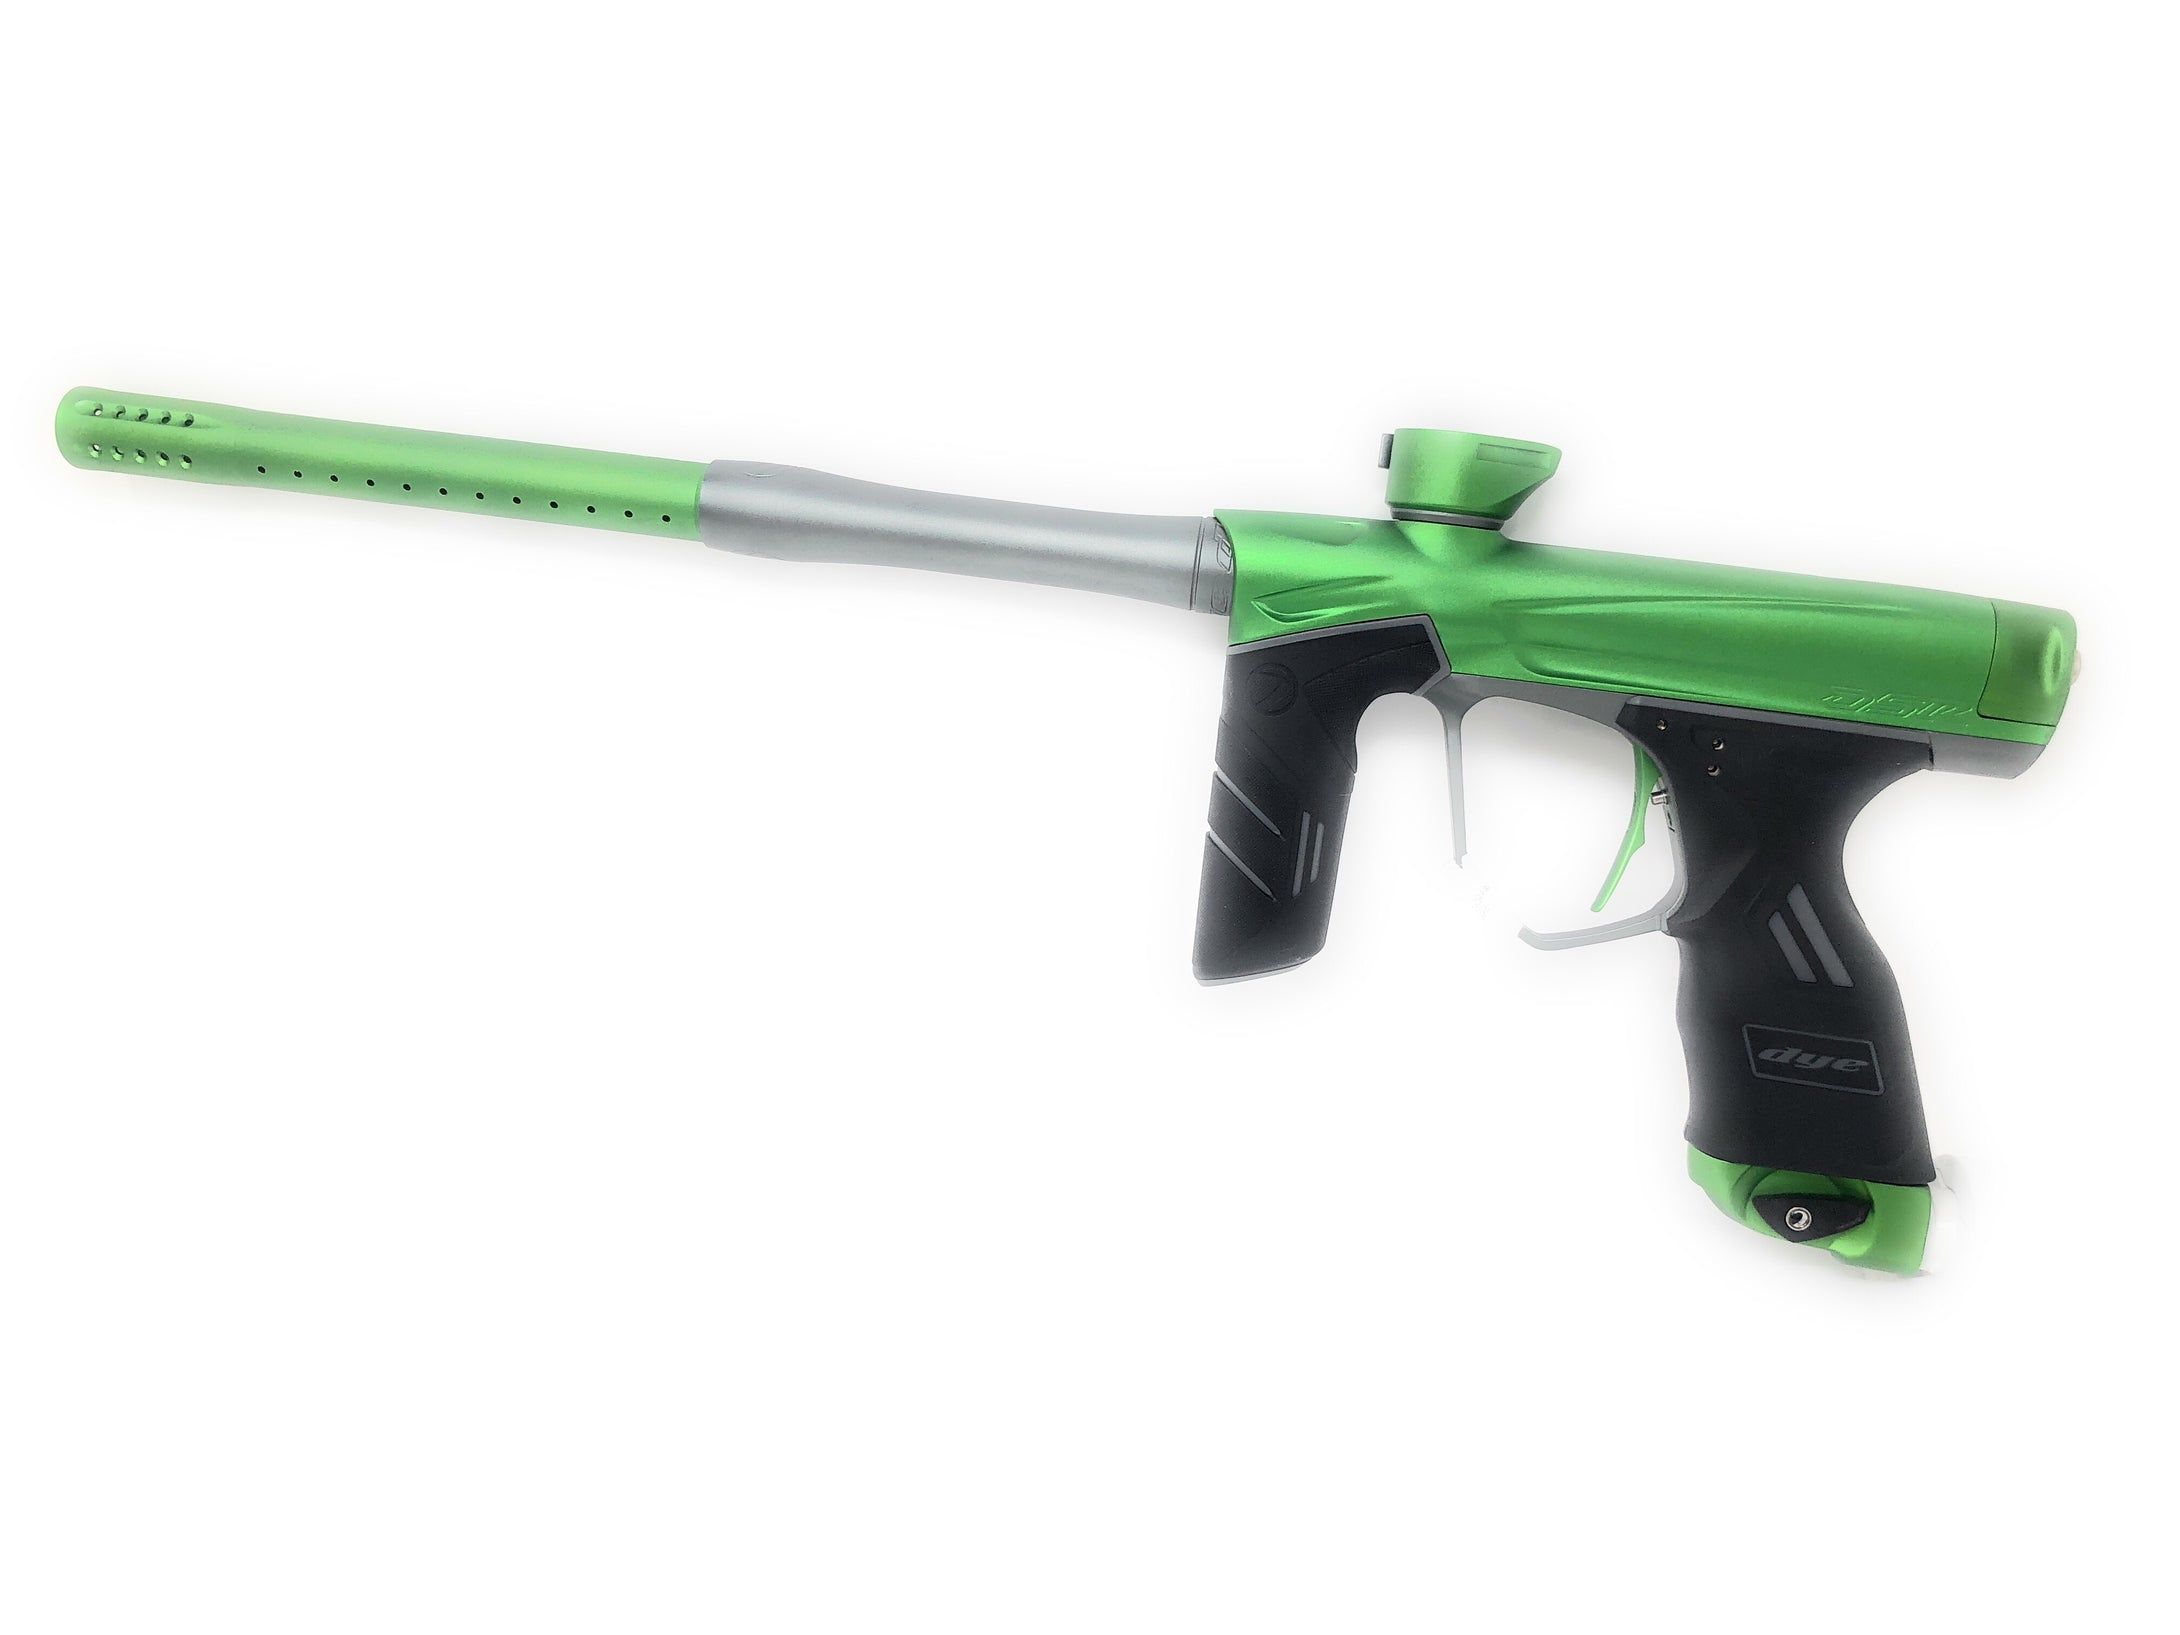 Photos of Dye DSR Paintball Marker - Green/Grey. Photo taken by drpaintball.com